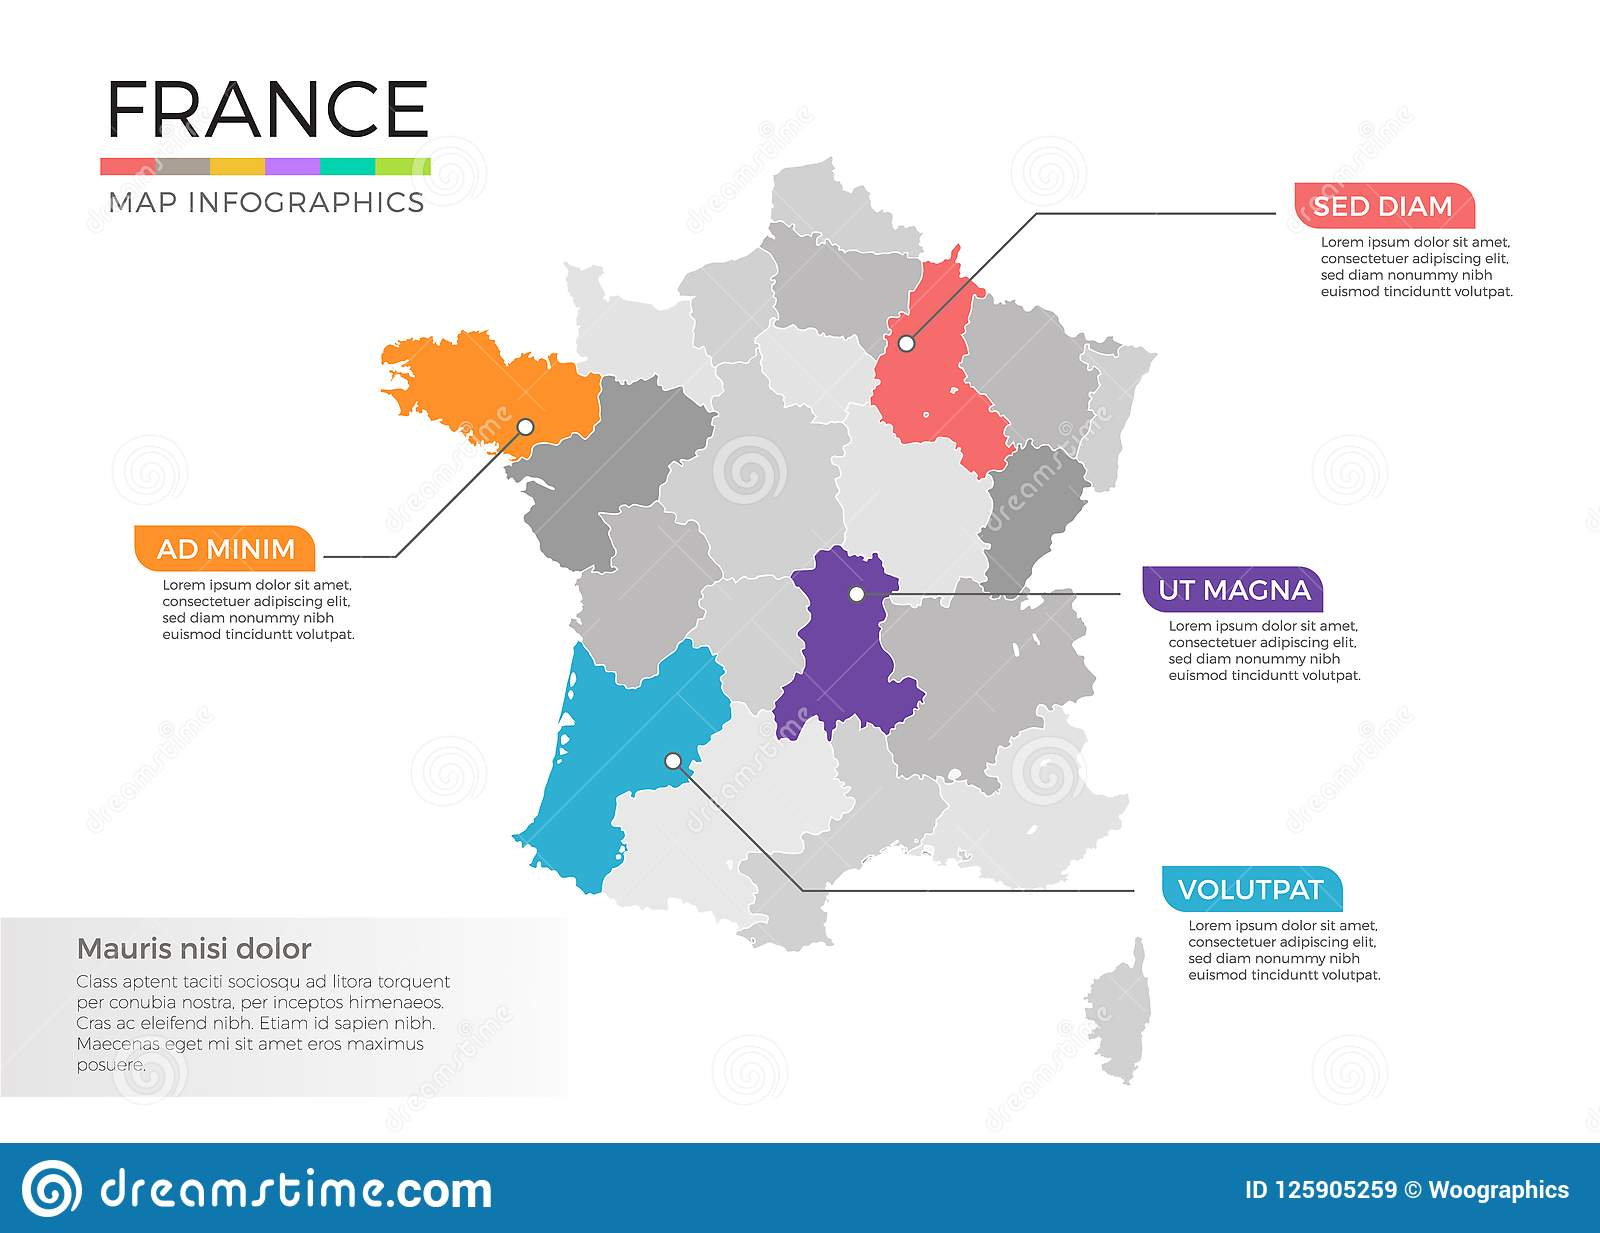 Districts Of France Map.France Map Infographics Vector Template With Regions And Pointer